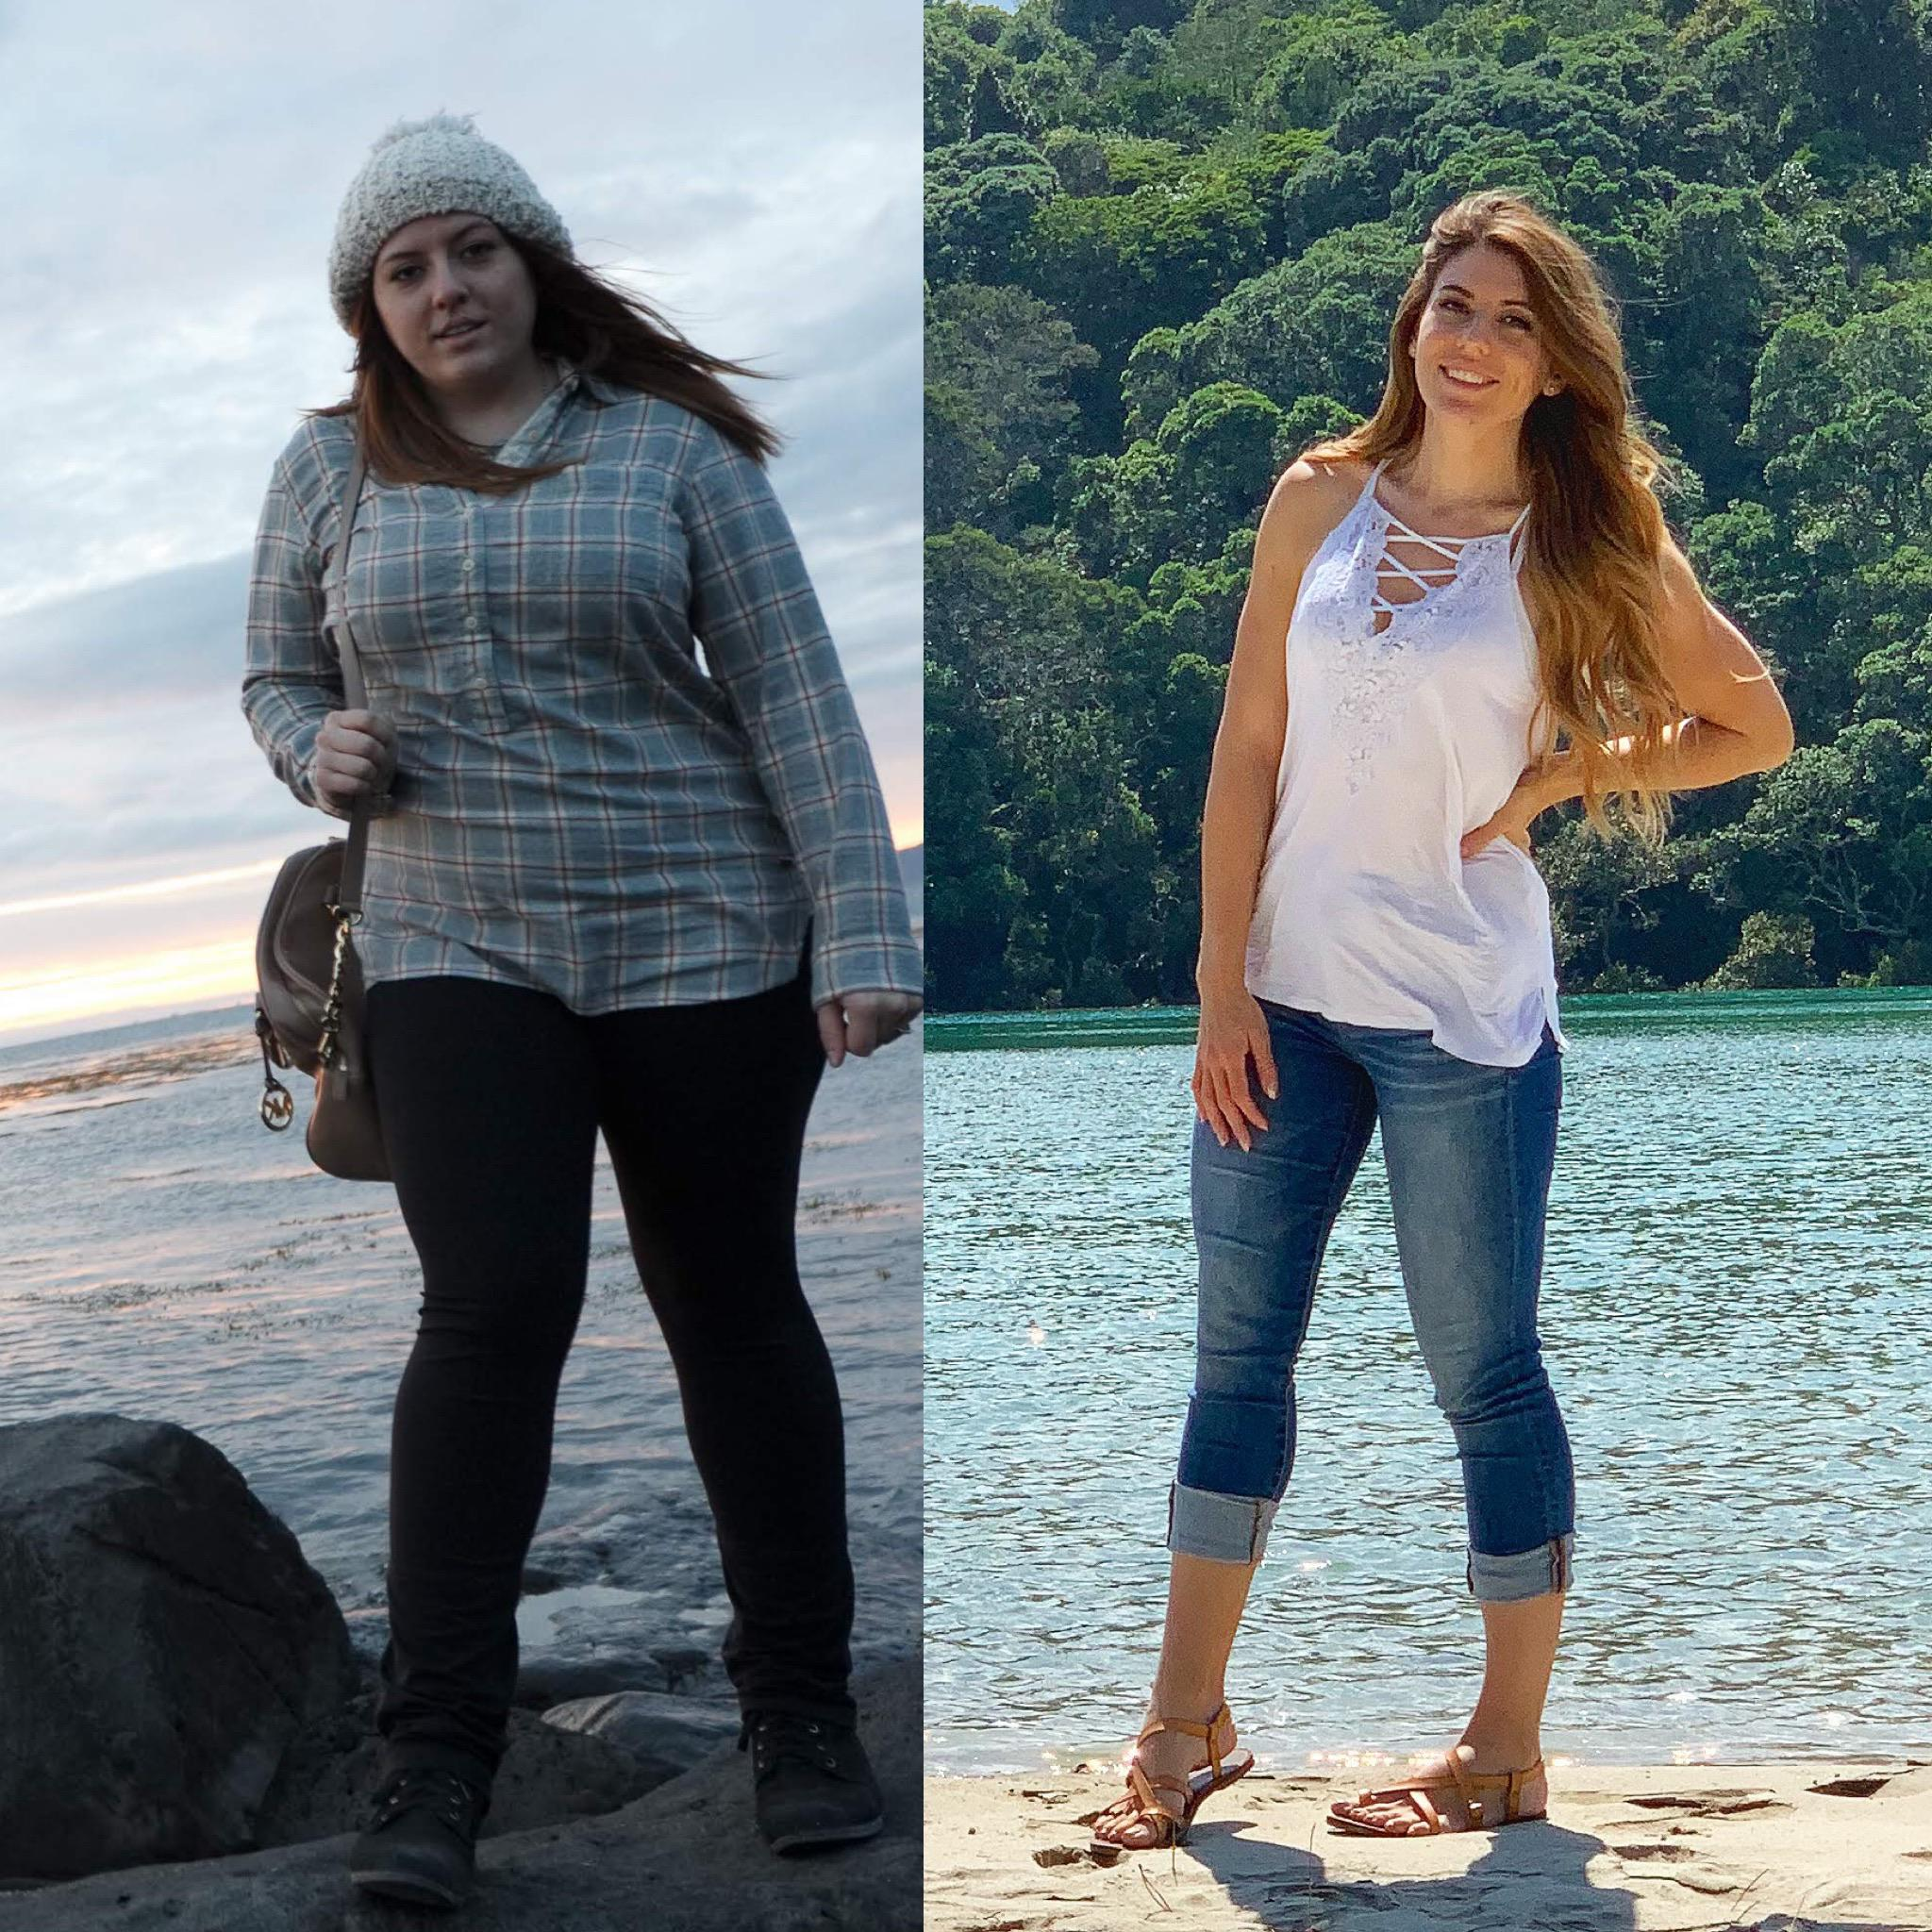 5 feet 6 Female Before and After 80 lbs Weight Loss 230 lbs to 150 lbs